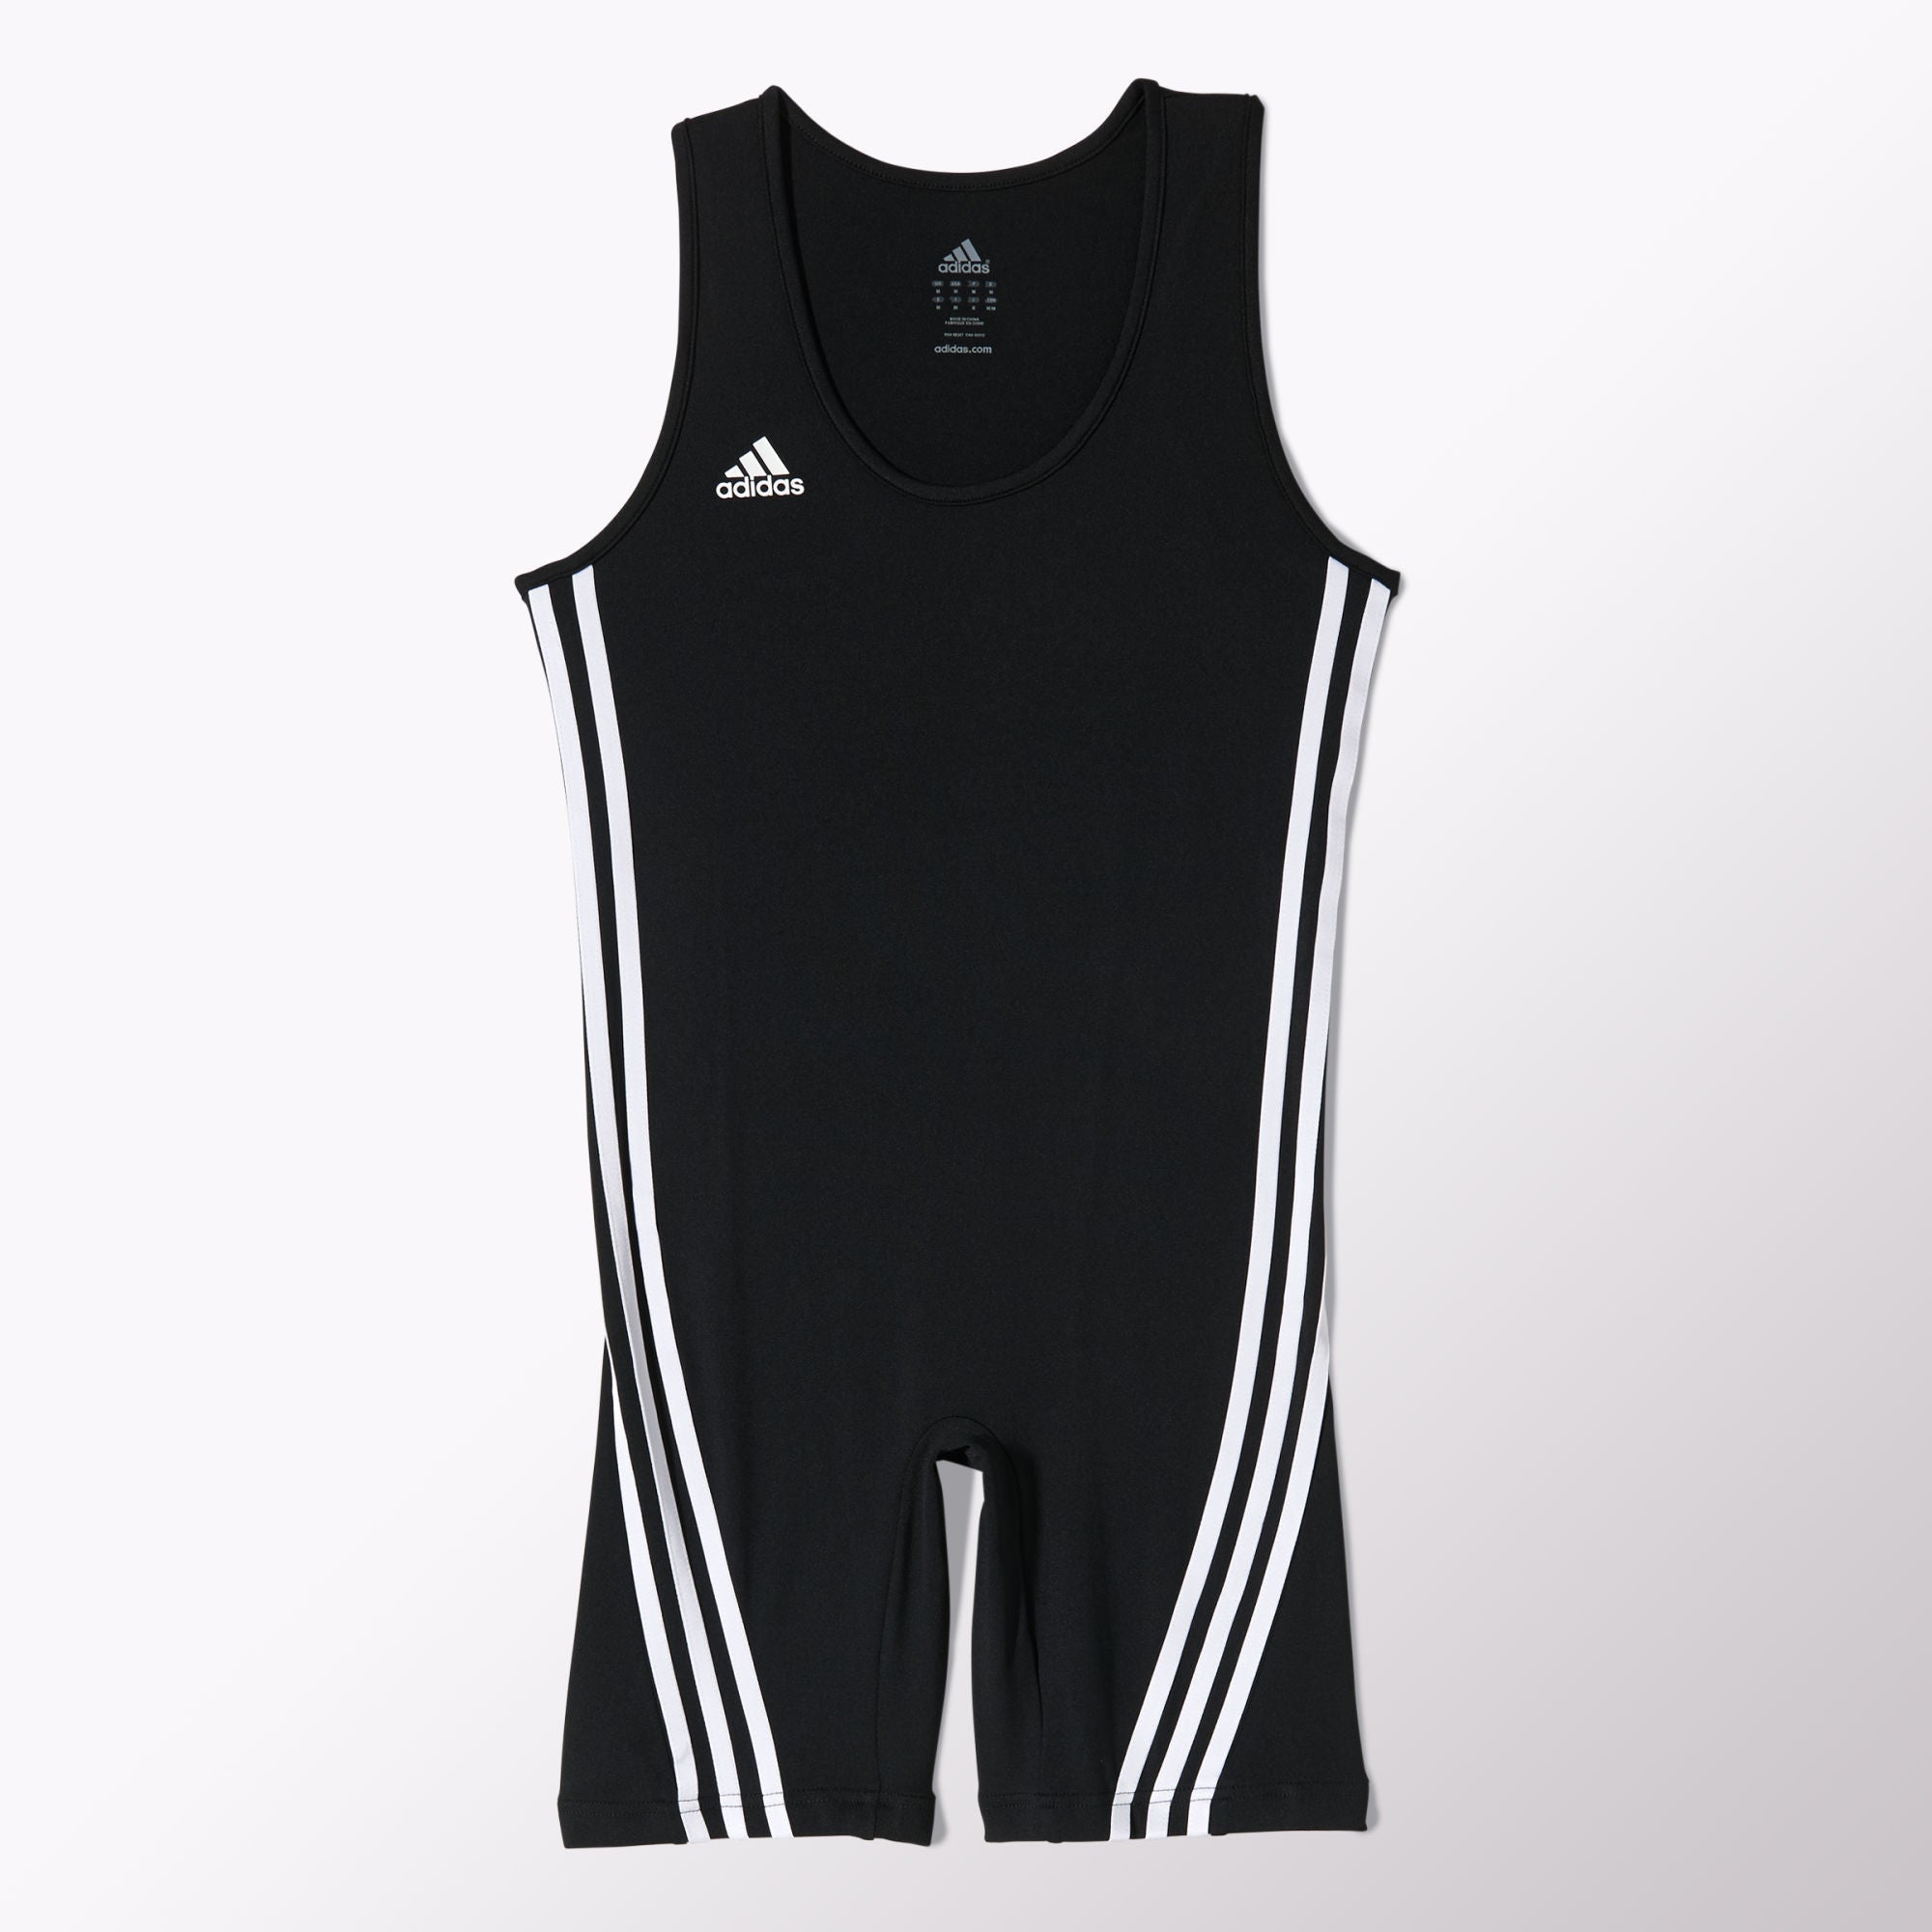 Adidas Base Lifter Suit - Unisex